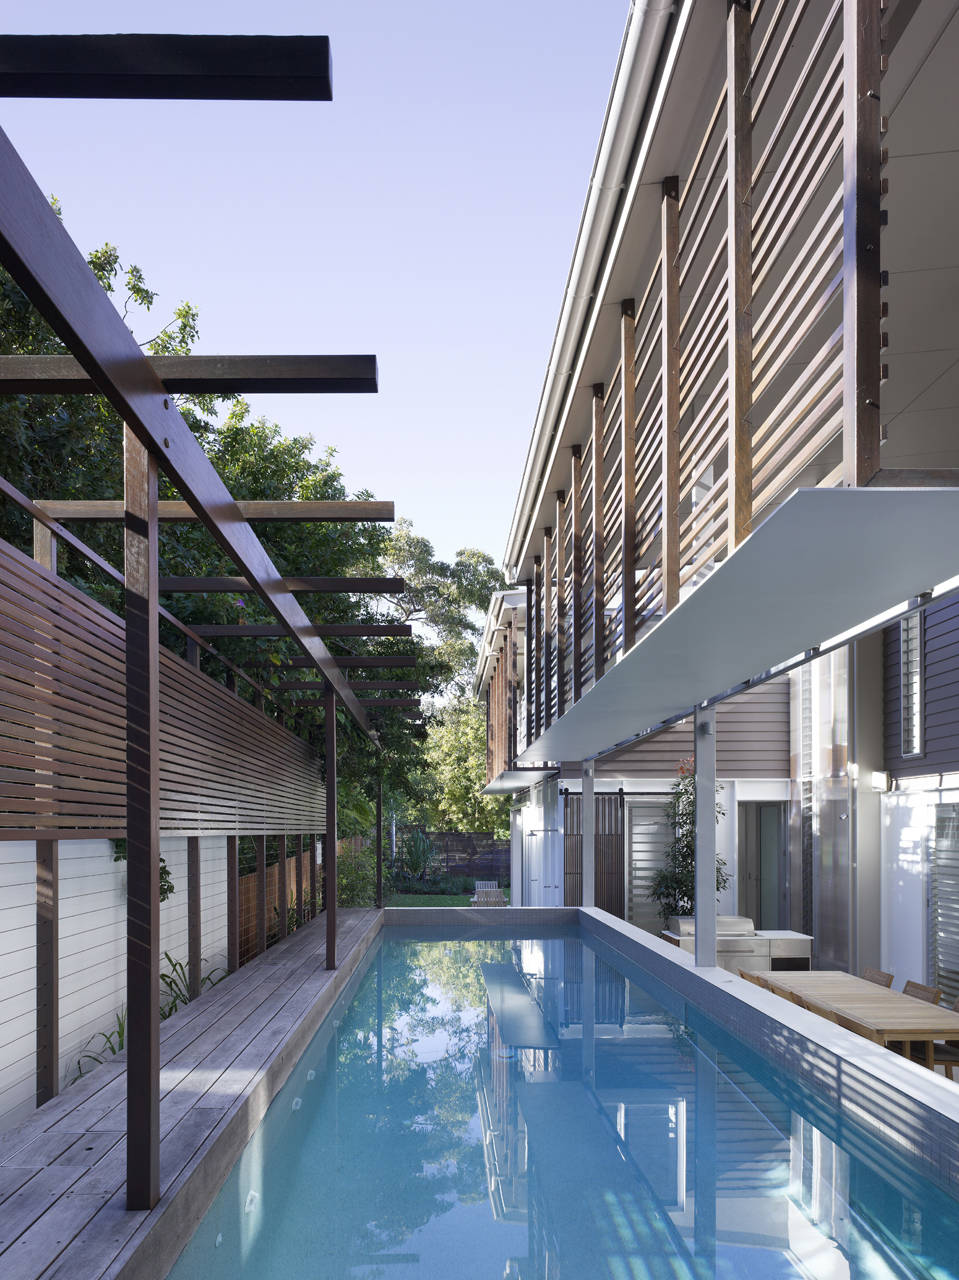 Sunshine beach pool house by bark design architects for Pool design queensland